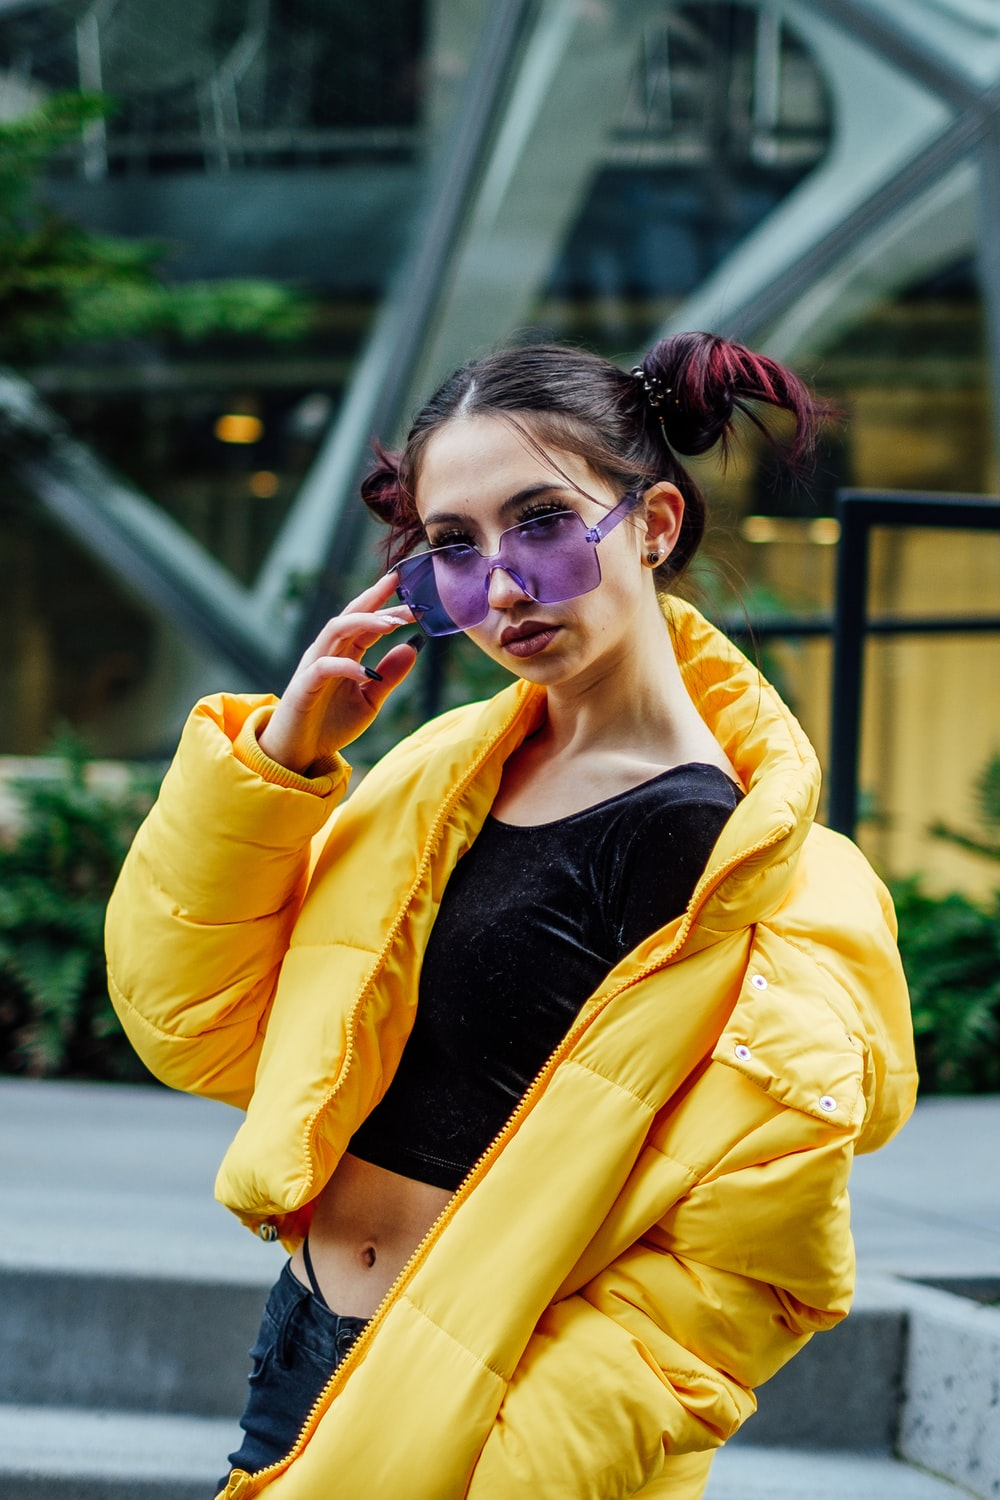 woman in yellow jacket with black inner shirt wearing purple sunglasses during daytime